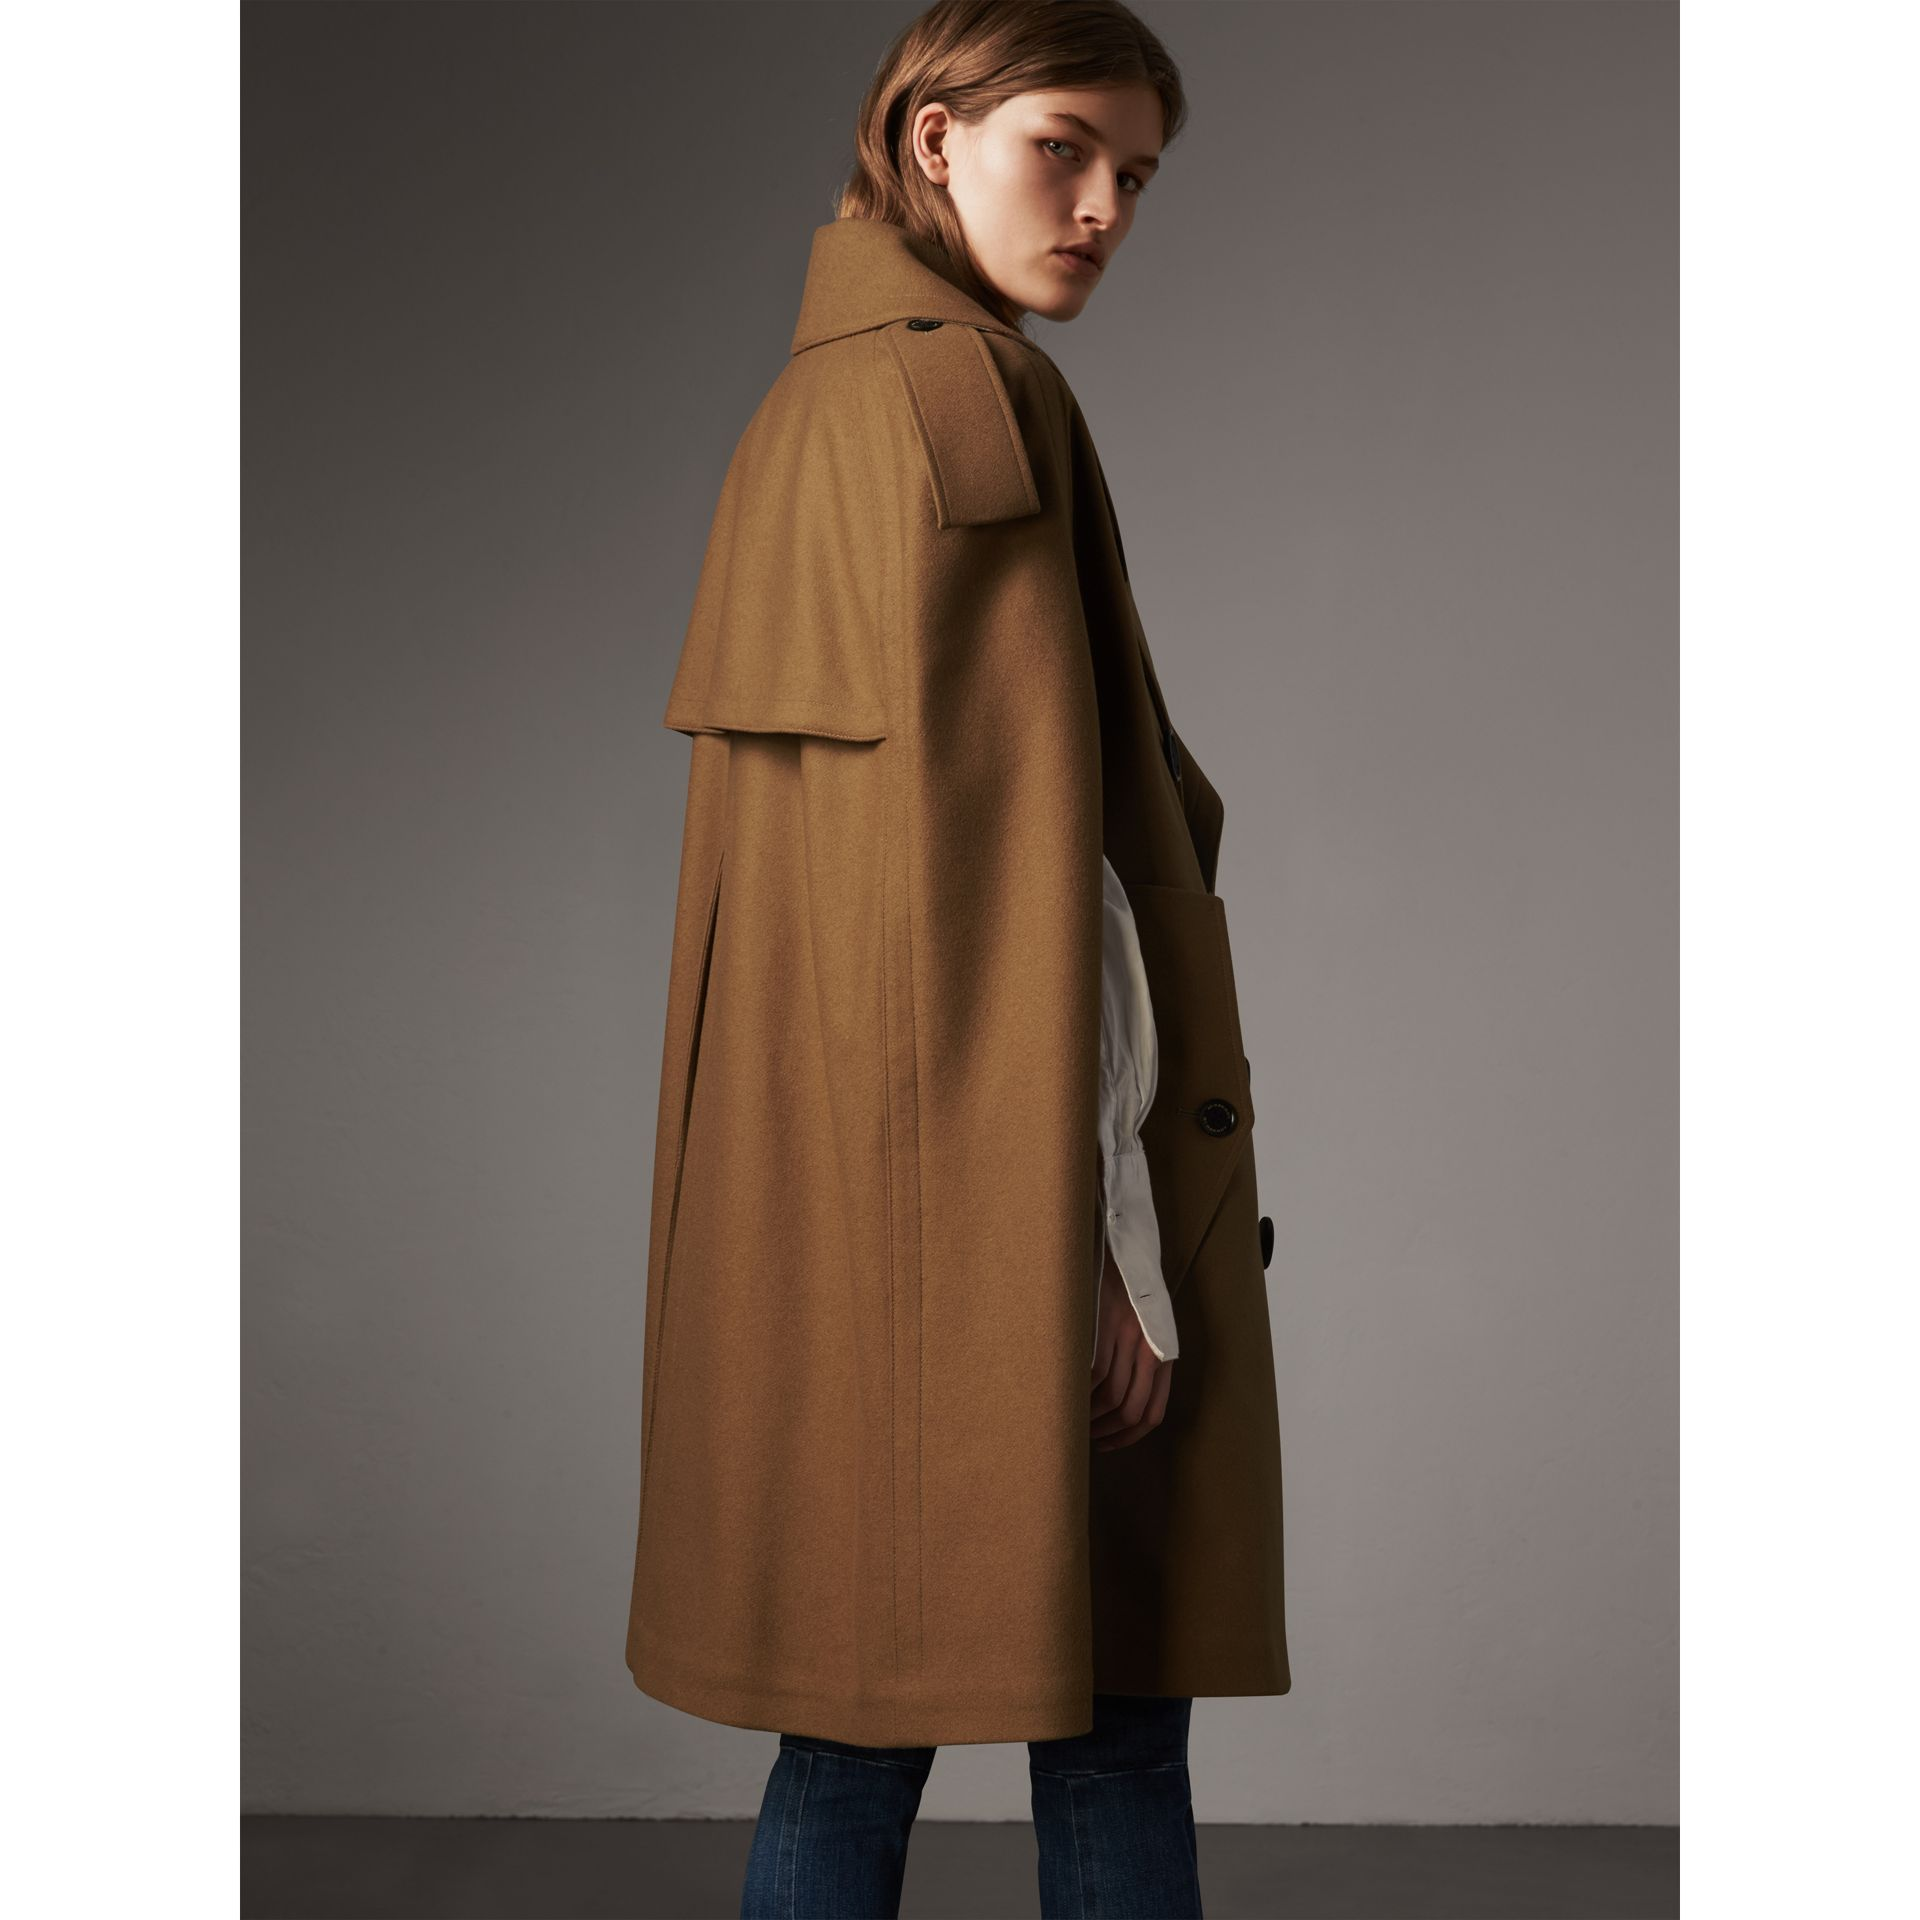 Wool Double-breasted Military Cape in Camel - Women | Burberry - gallery image 2